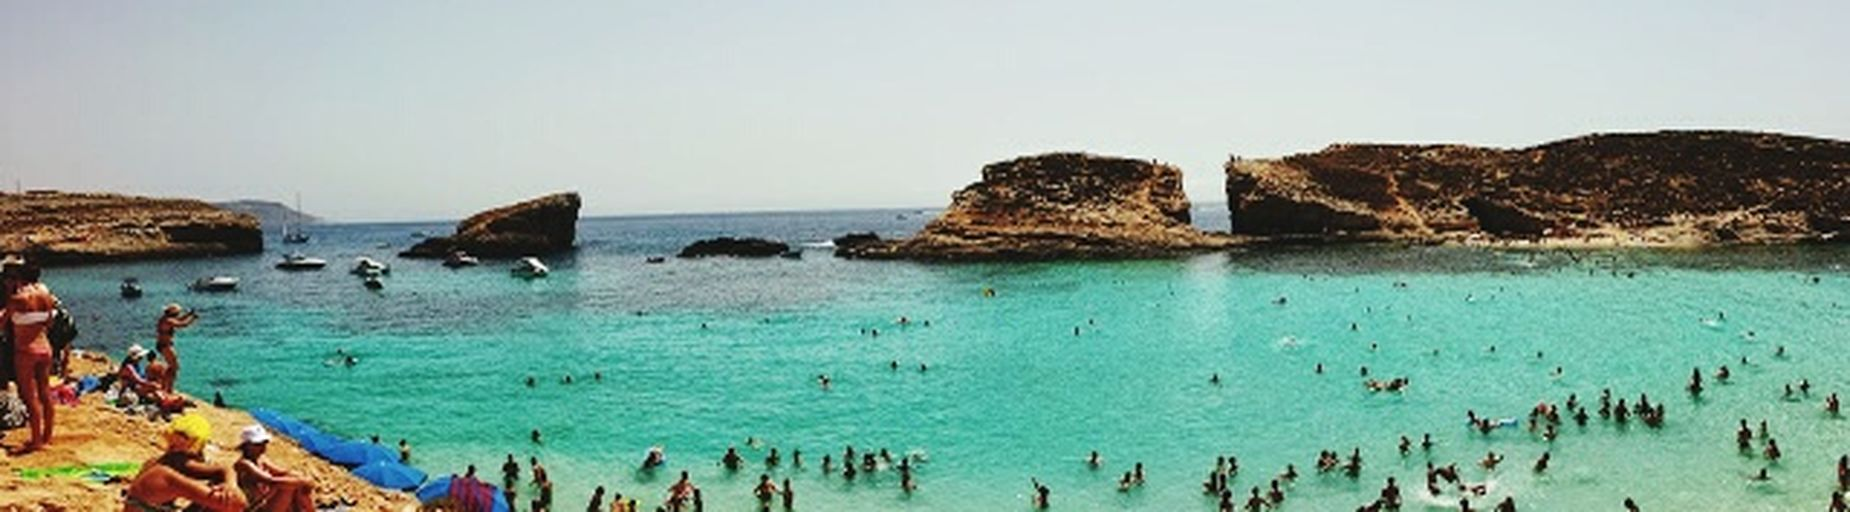 Landscape Malta2014 Life Is A Beach